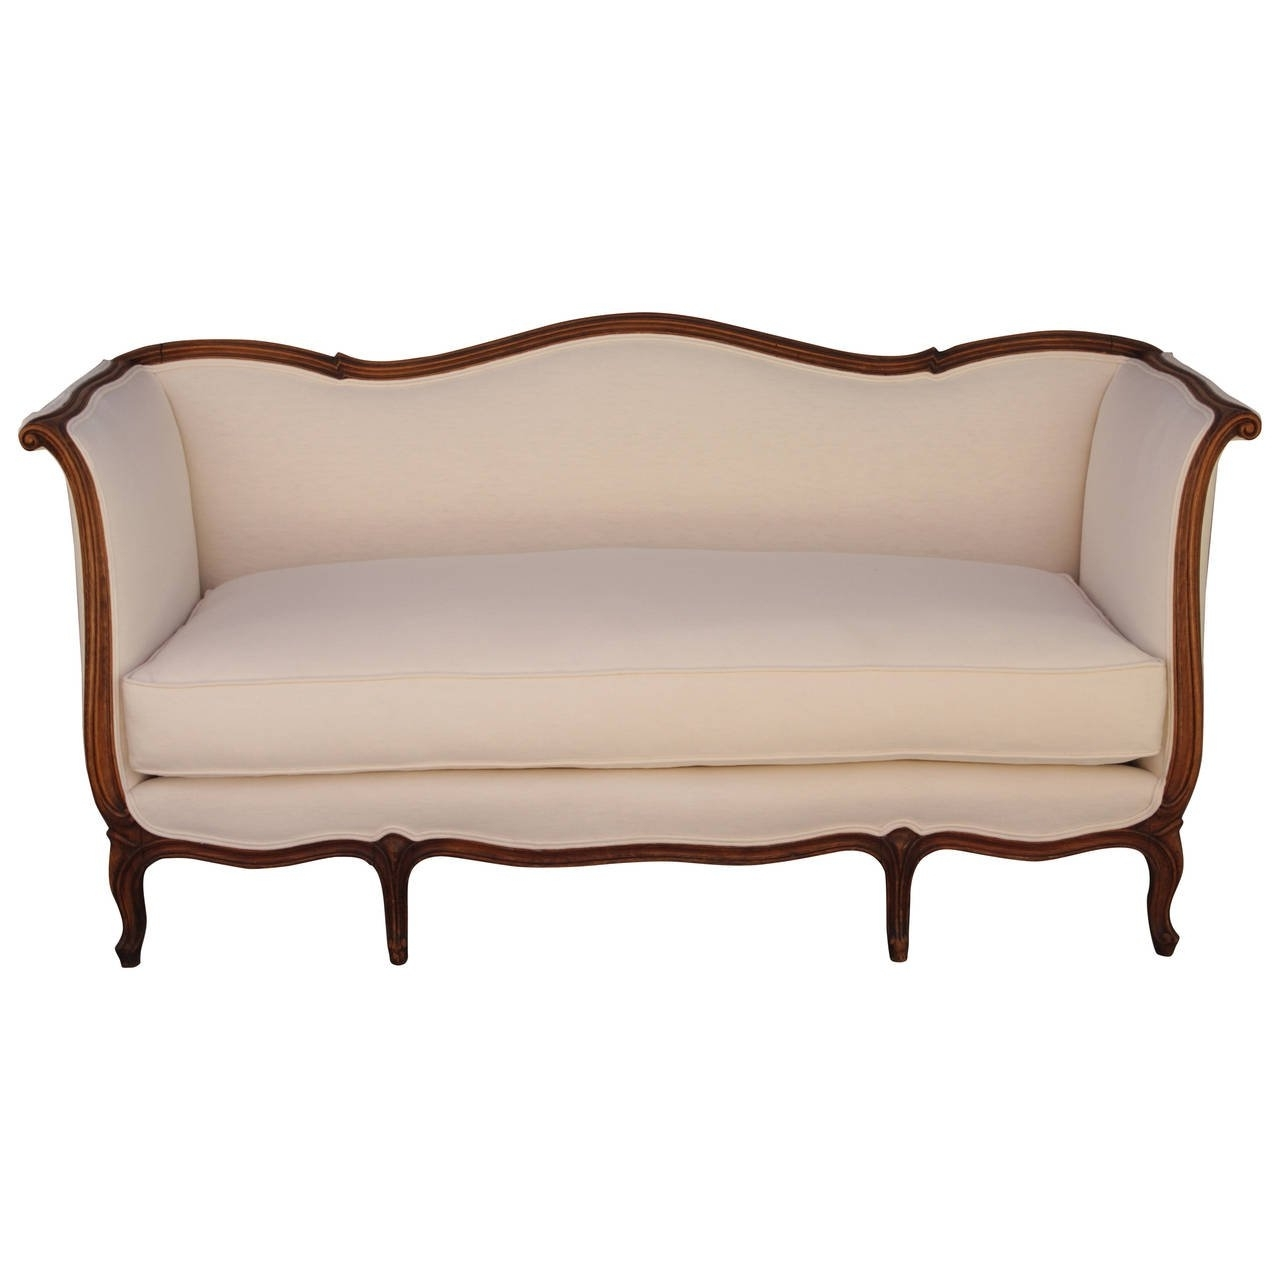 Well Known French Louis Xv Style Sofa With Linen Upholstery At 1Stdibs With Regard To French Style Sofas (View 5 of 15)